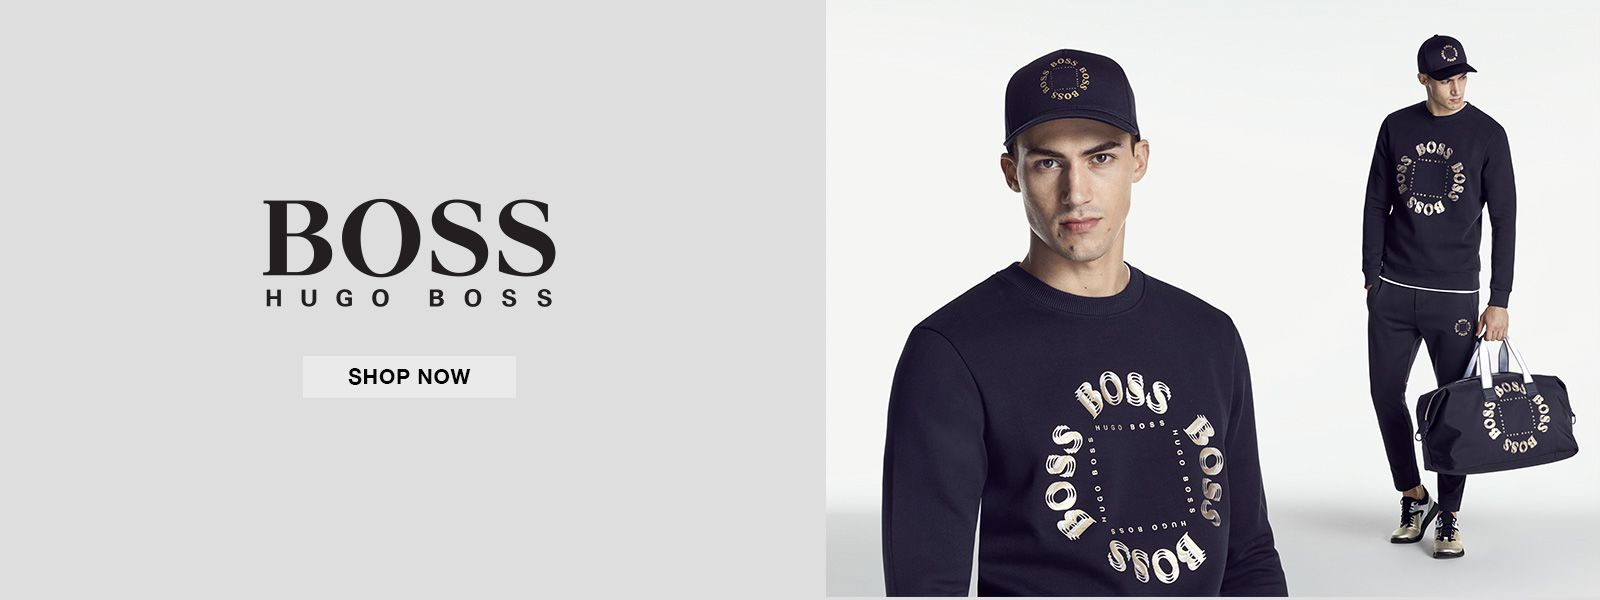 BOSS HUGO BOSS - Shop Now